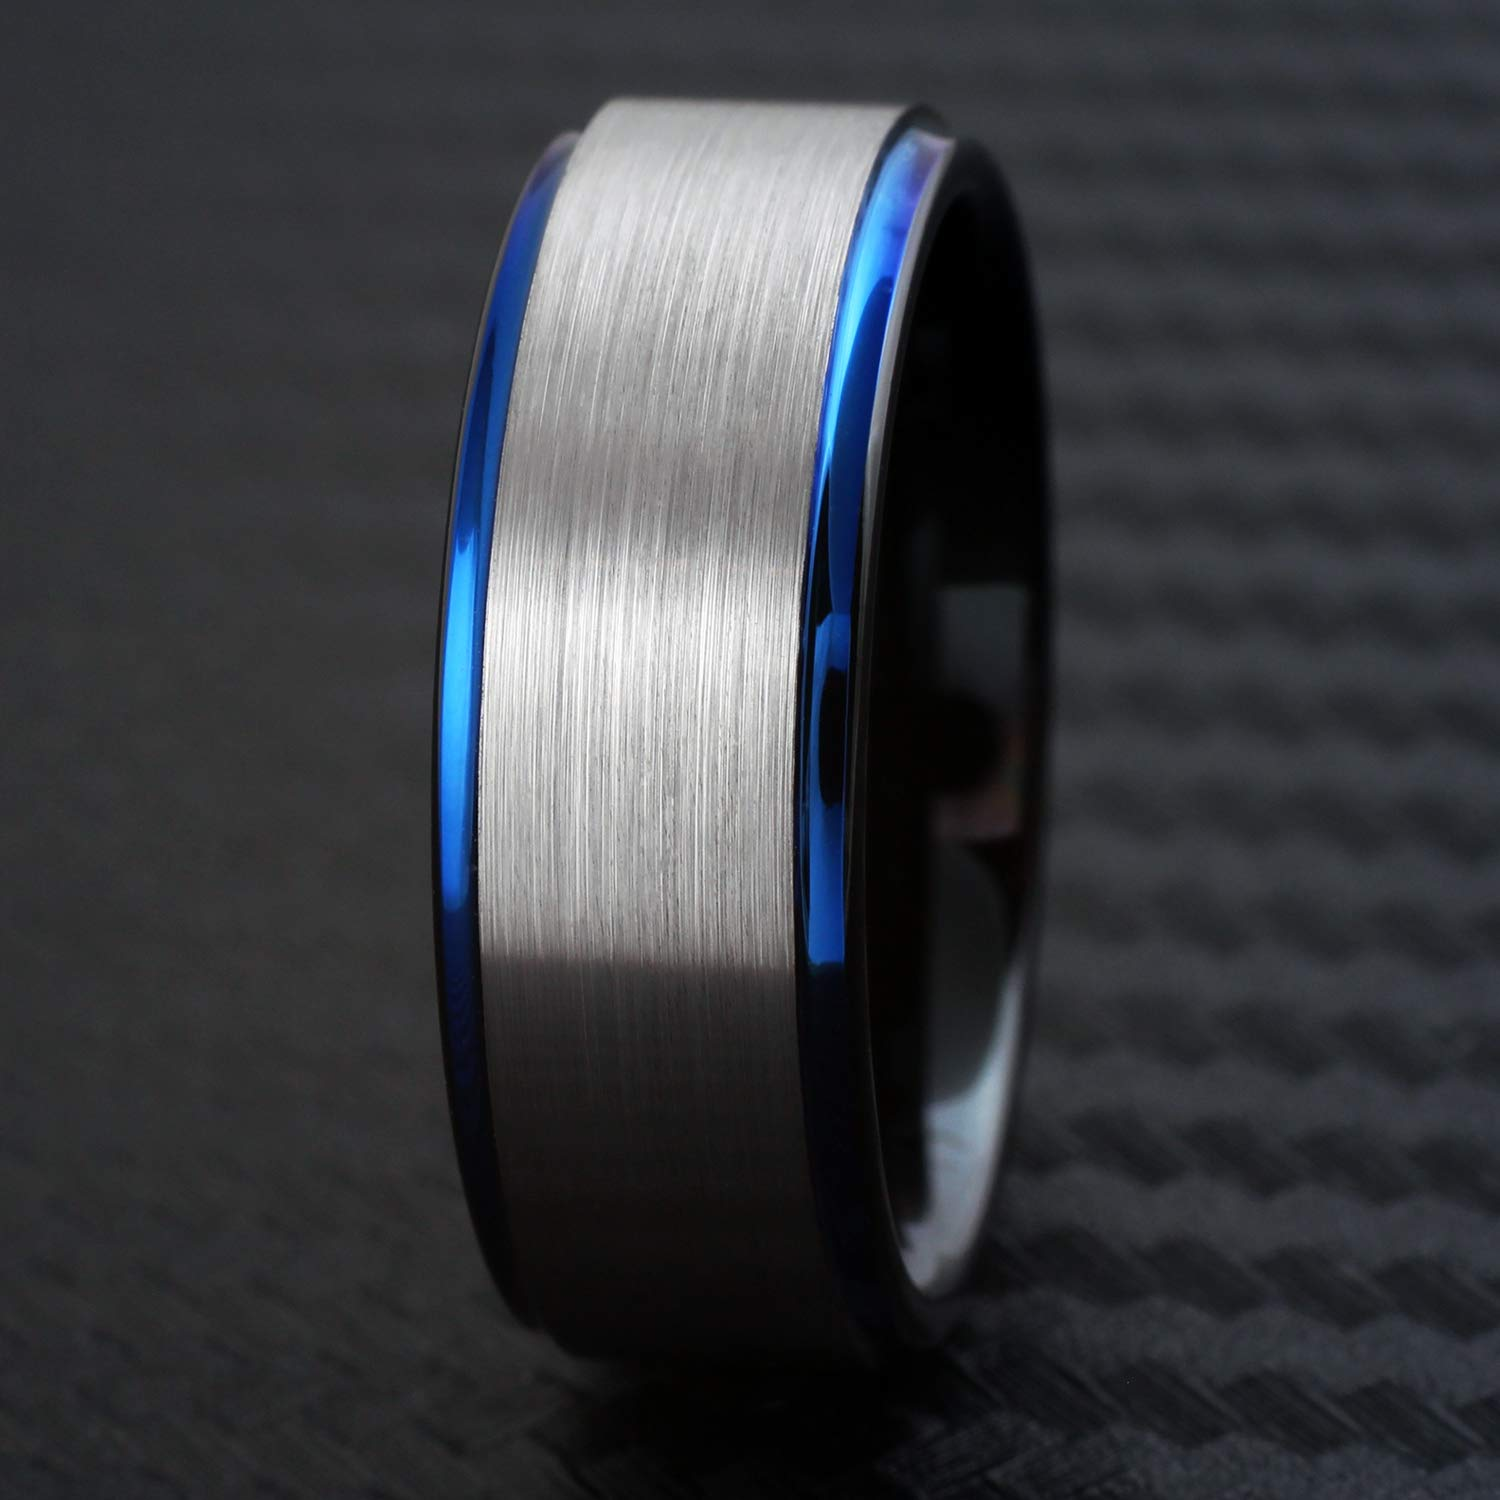 Engraved Personalized 3-Tone 6mm//8mm Tungsten Carbide Band Ring with Brushed Satin Finish Silver Outer Band Polished Royal Blue Stepped Edges /& Black Comfort Fit Inner Band.